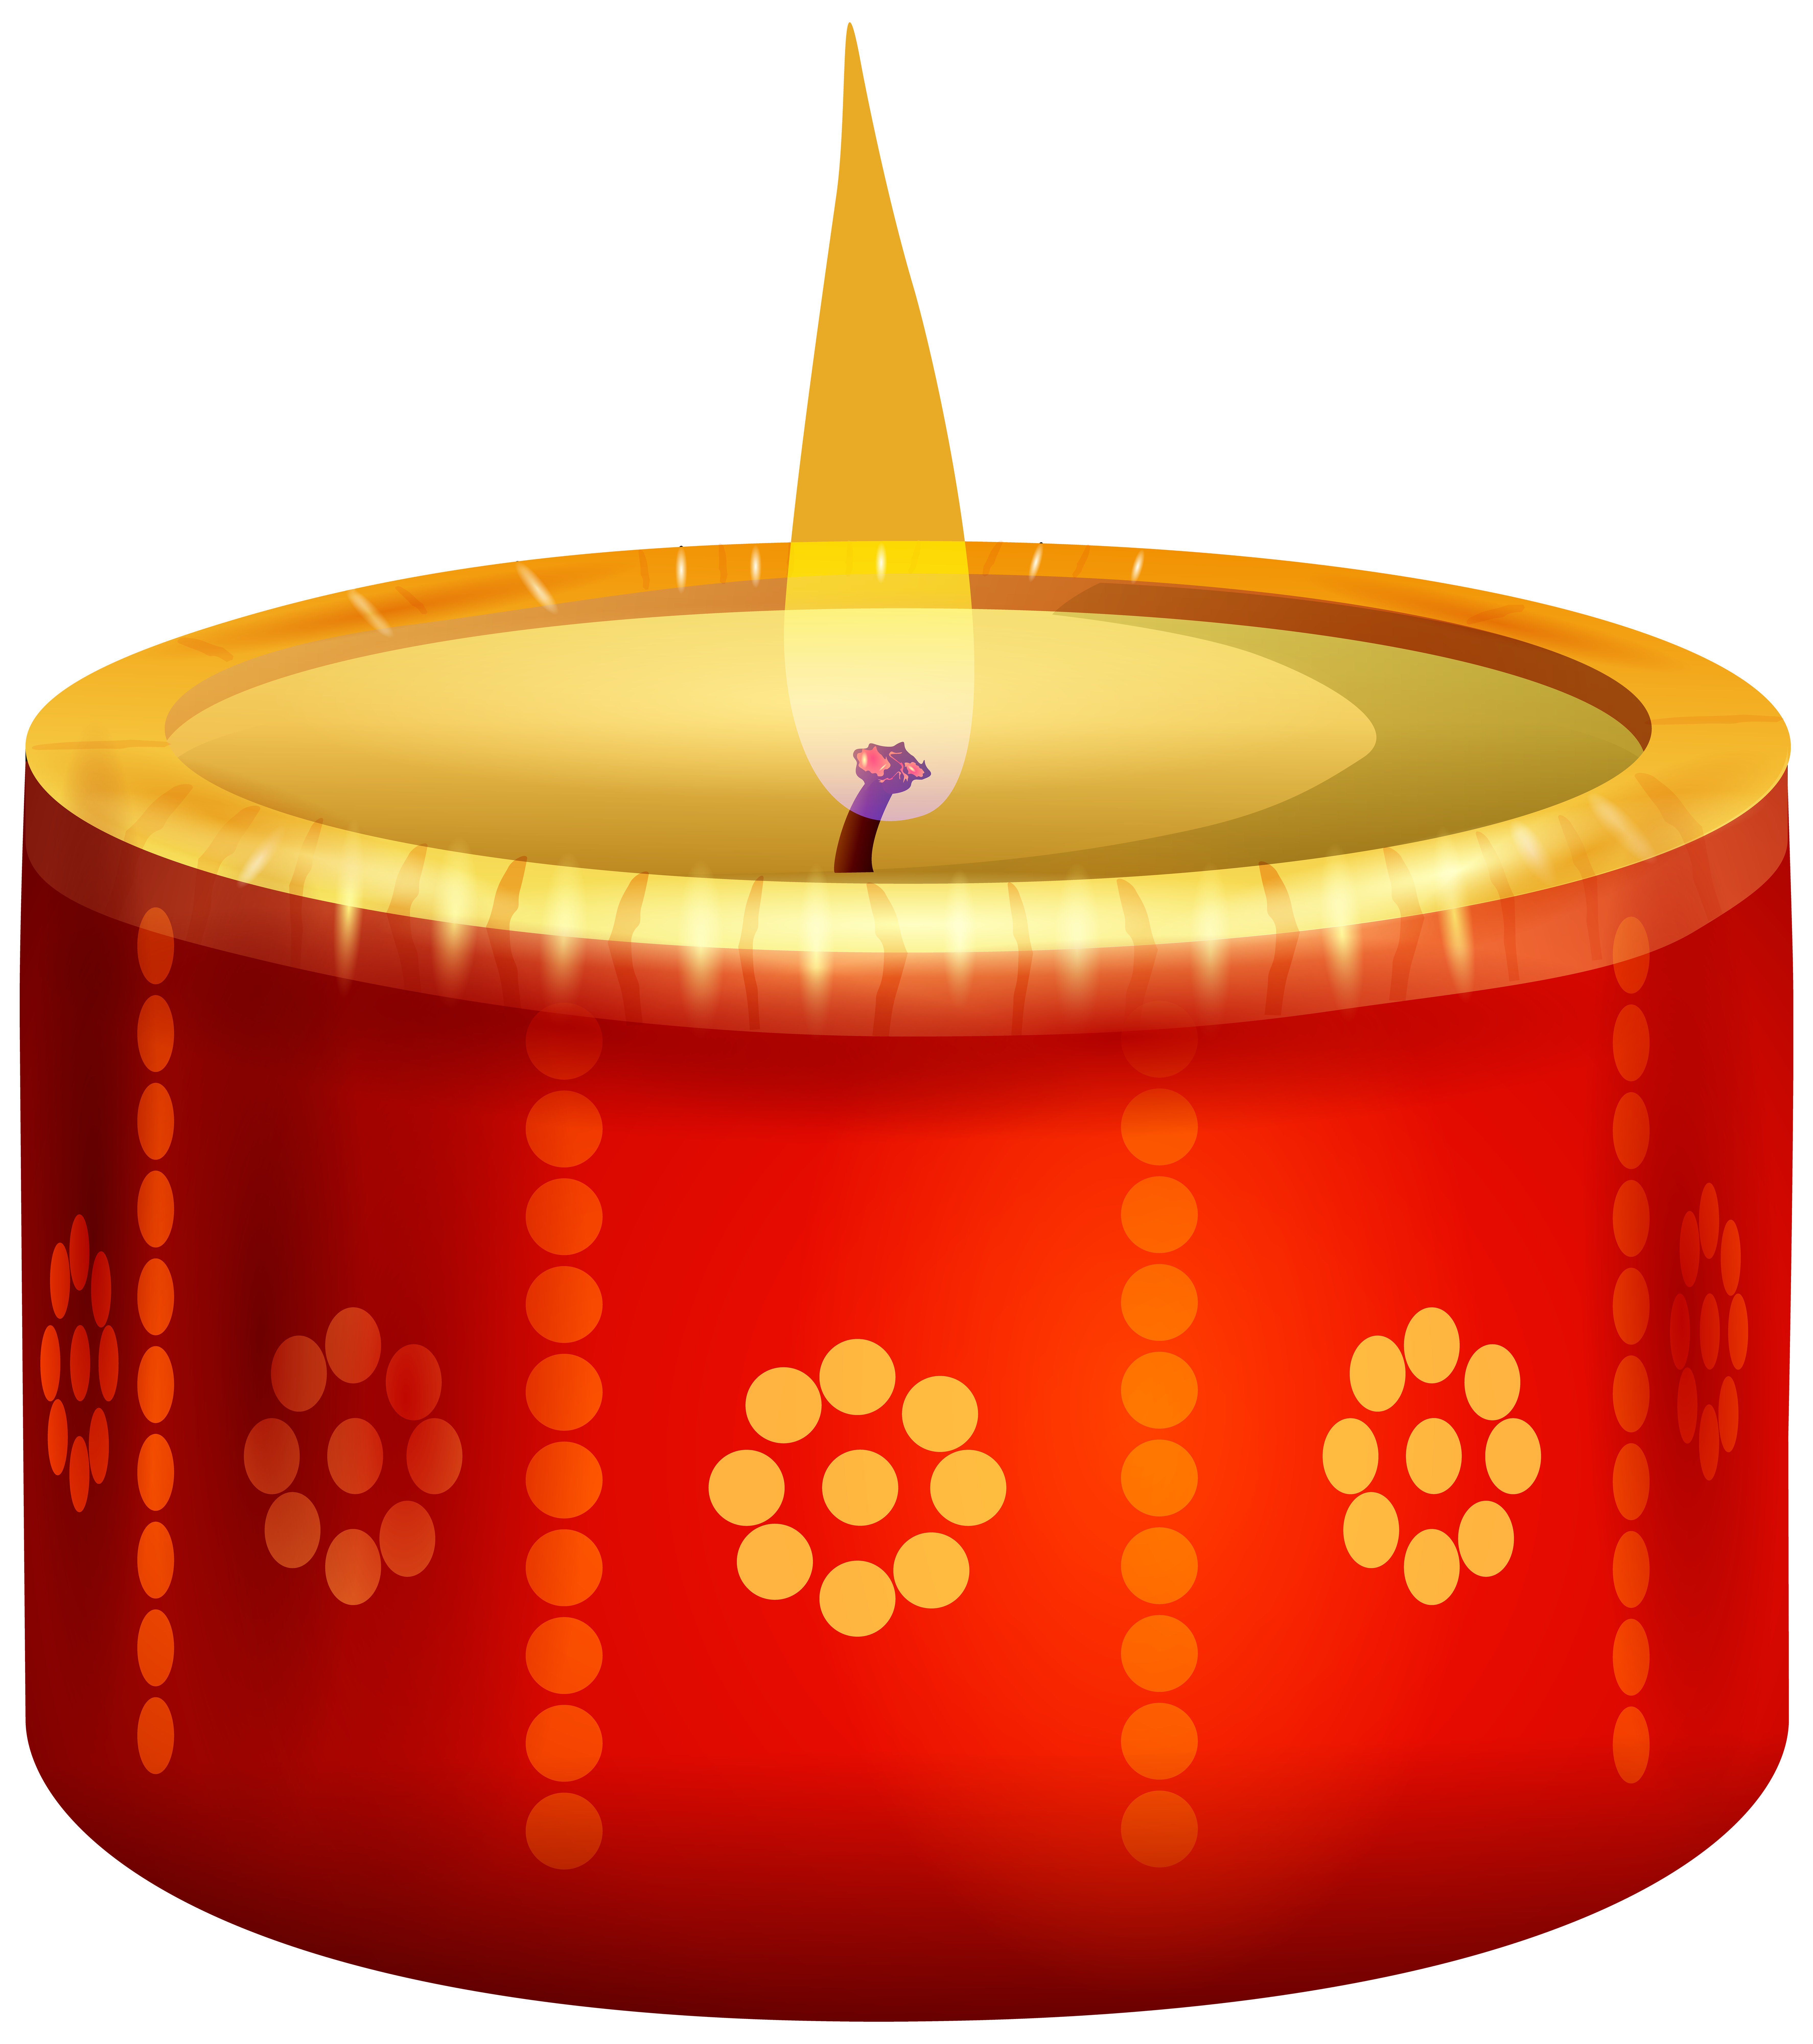 Diwali candles free png. Candle clip art india